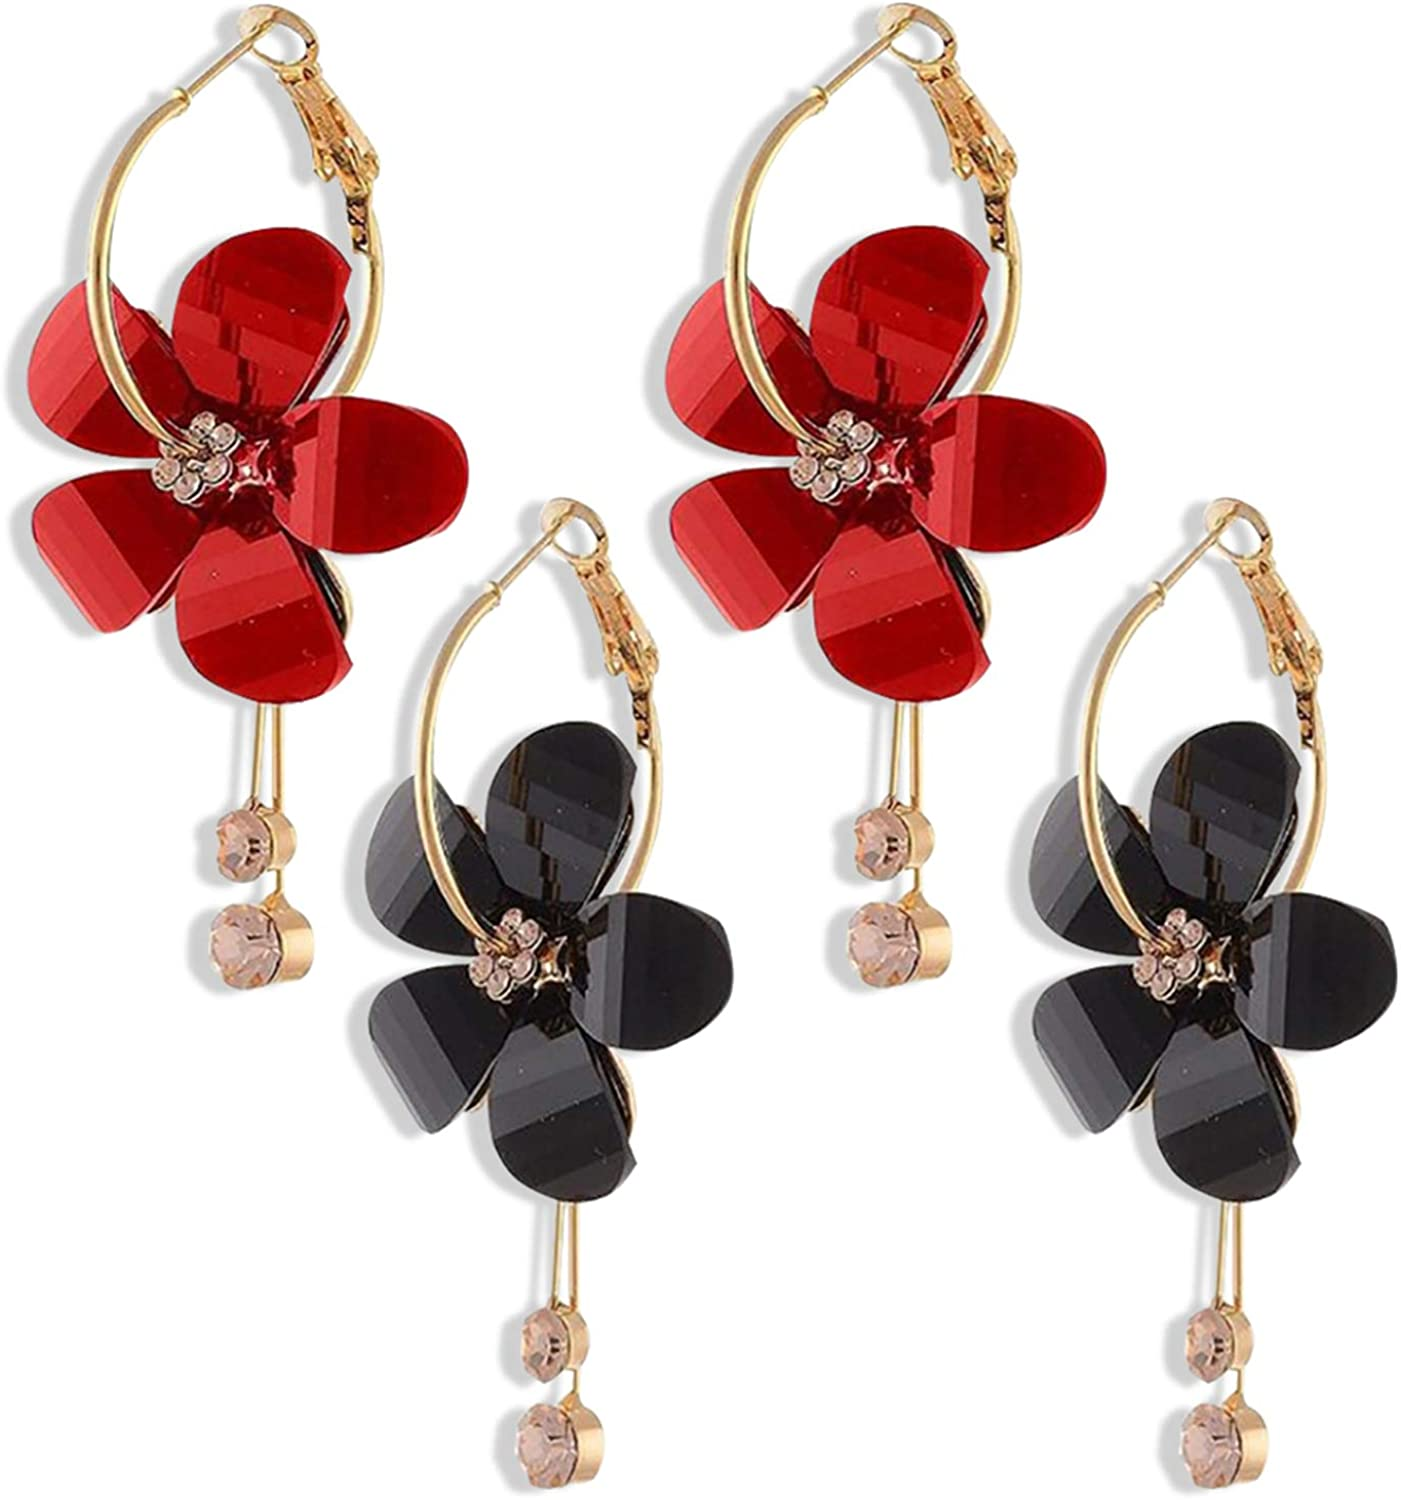 ZRosse 2 Pairs Fashion 5 Acrylic Petals and 5 Bricked Stamens with Two Long Chain Tassals Earrings Acrylic Resin Sun Flower Big Circle Stud Earrings for Women and Girls